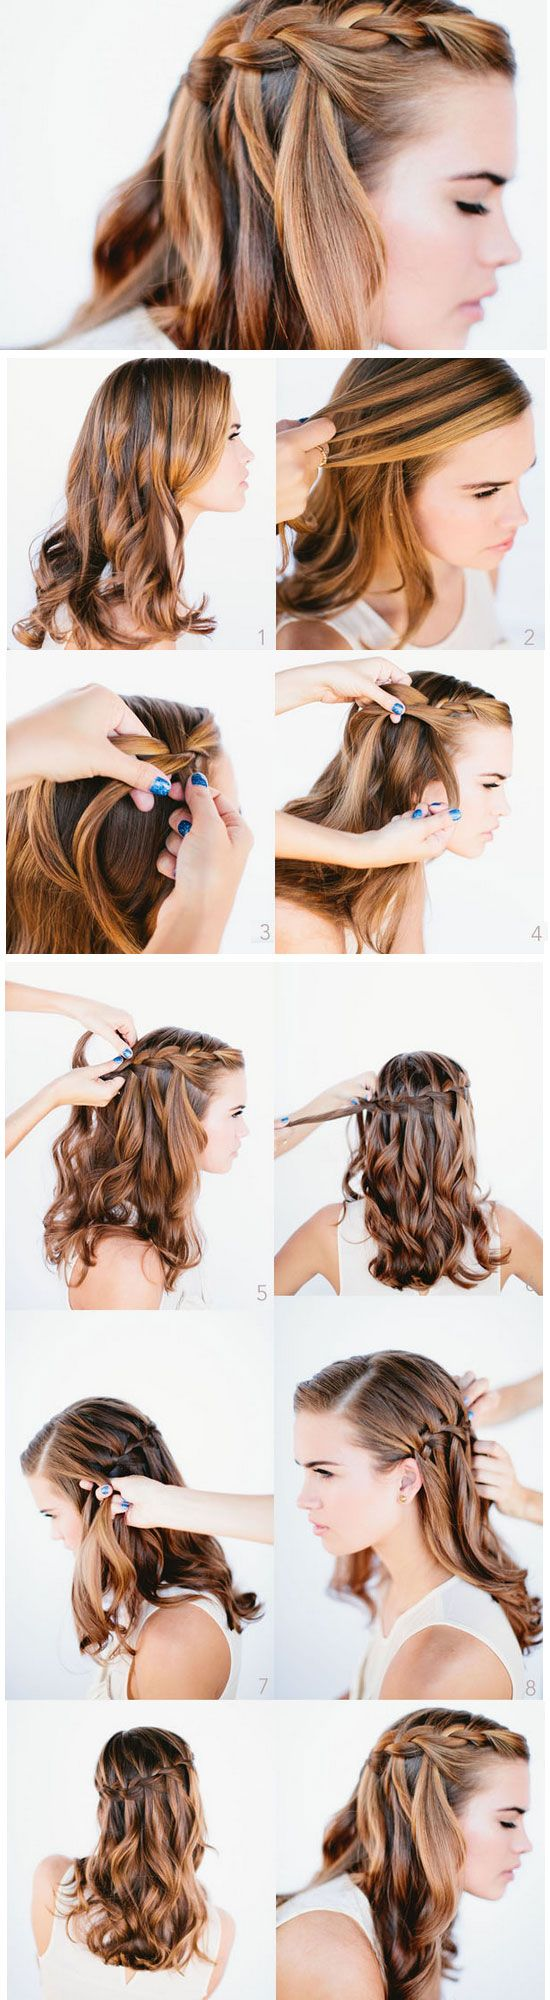 5 Minute Hairstyles For Girls 25 Best Ideas About Morning Hair On Pinterest Quick Messy Bun